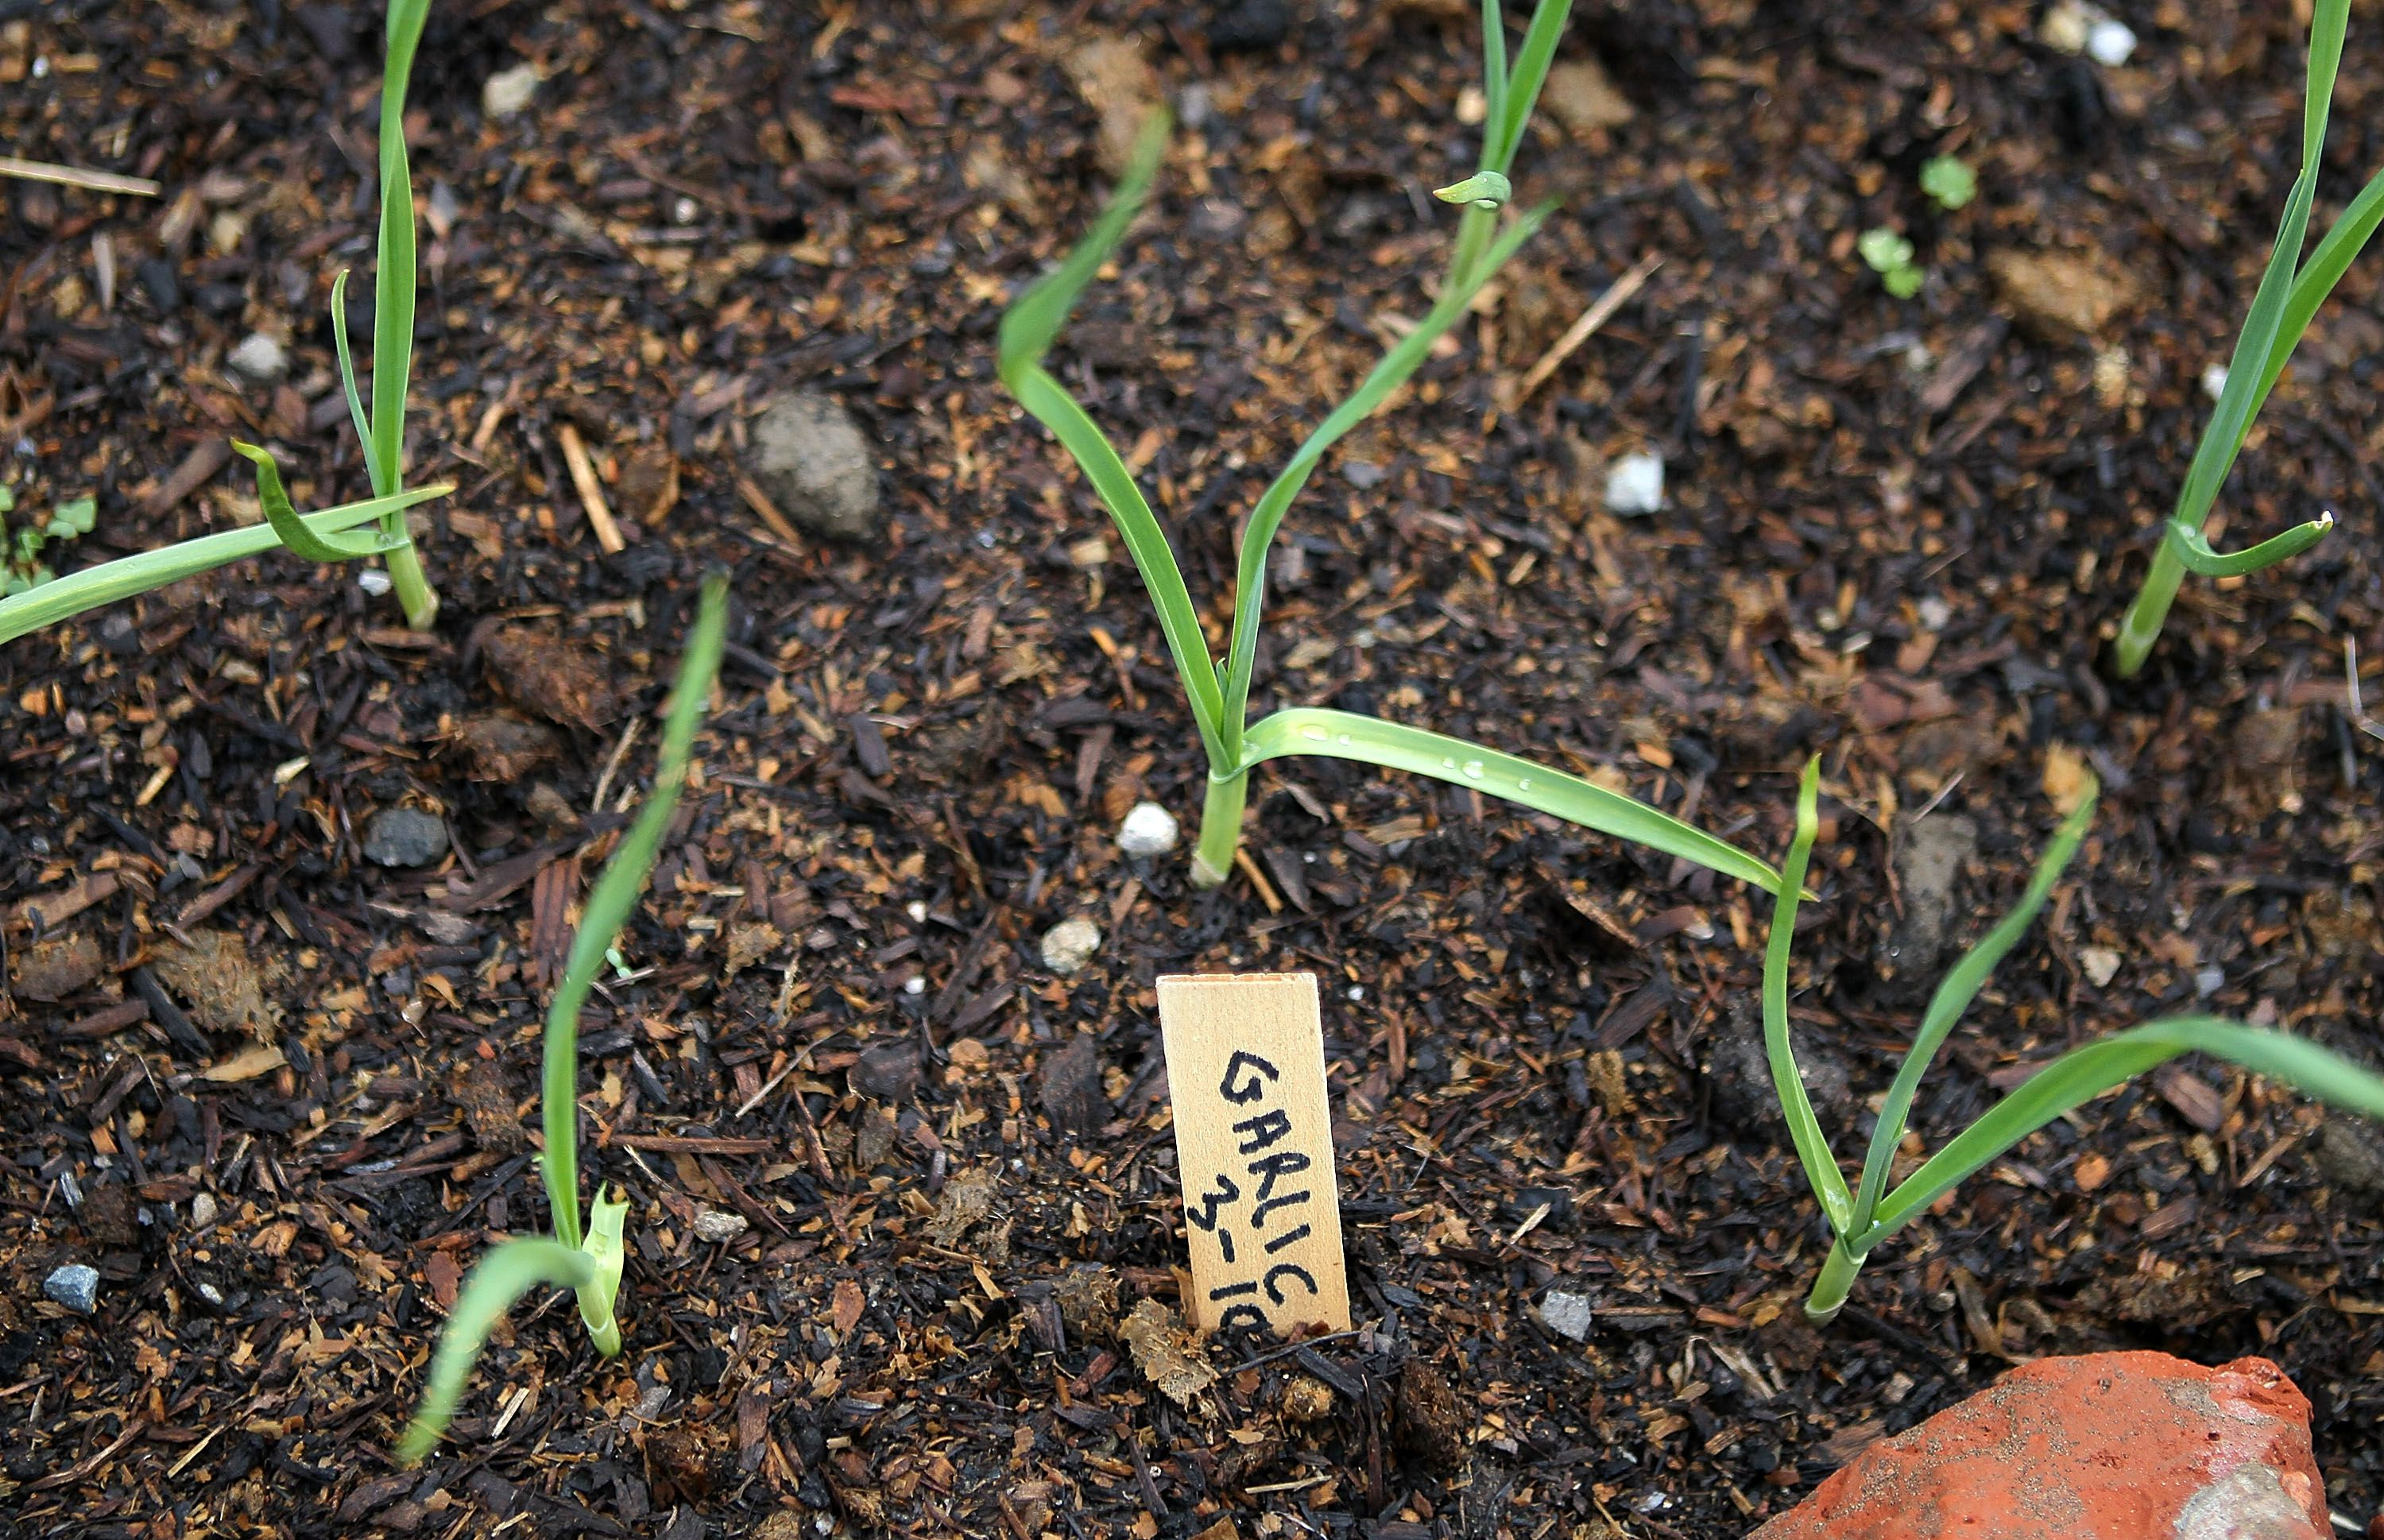 How To Prepare The Soil For Growing Garlic